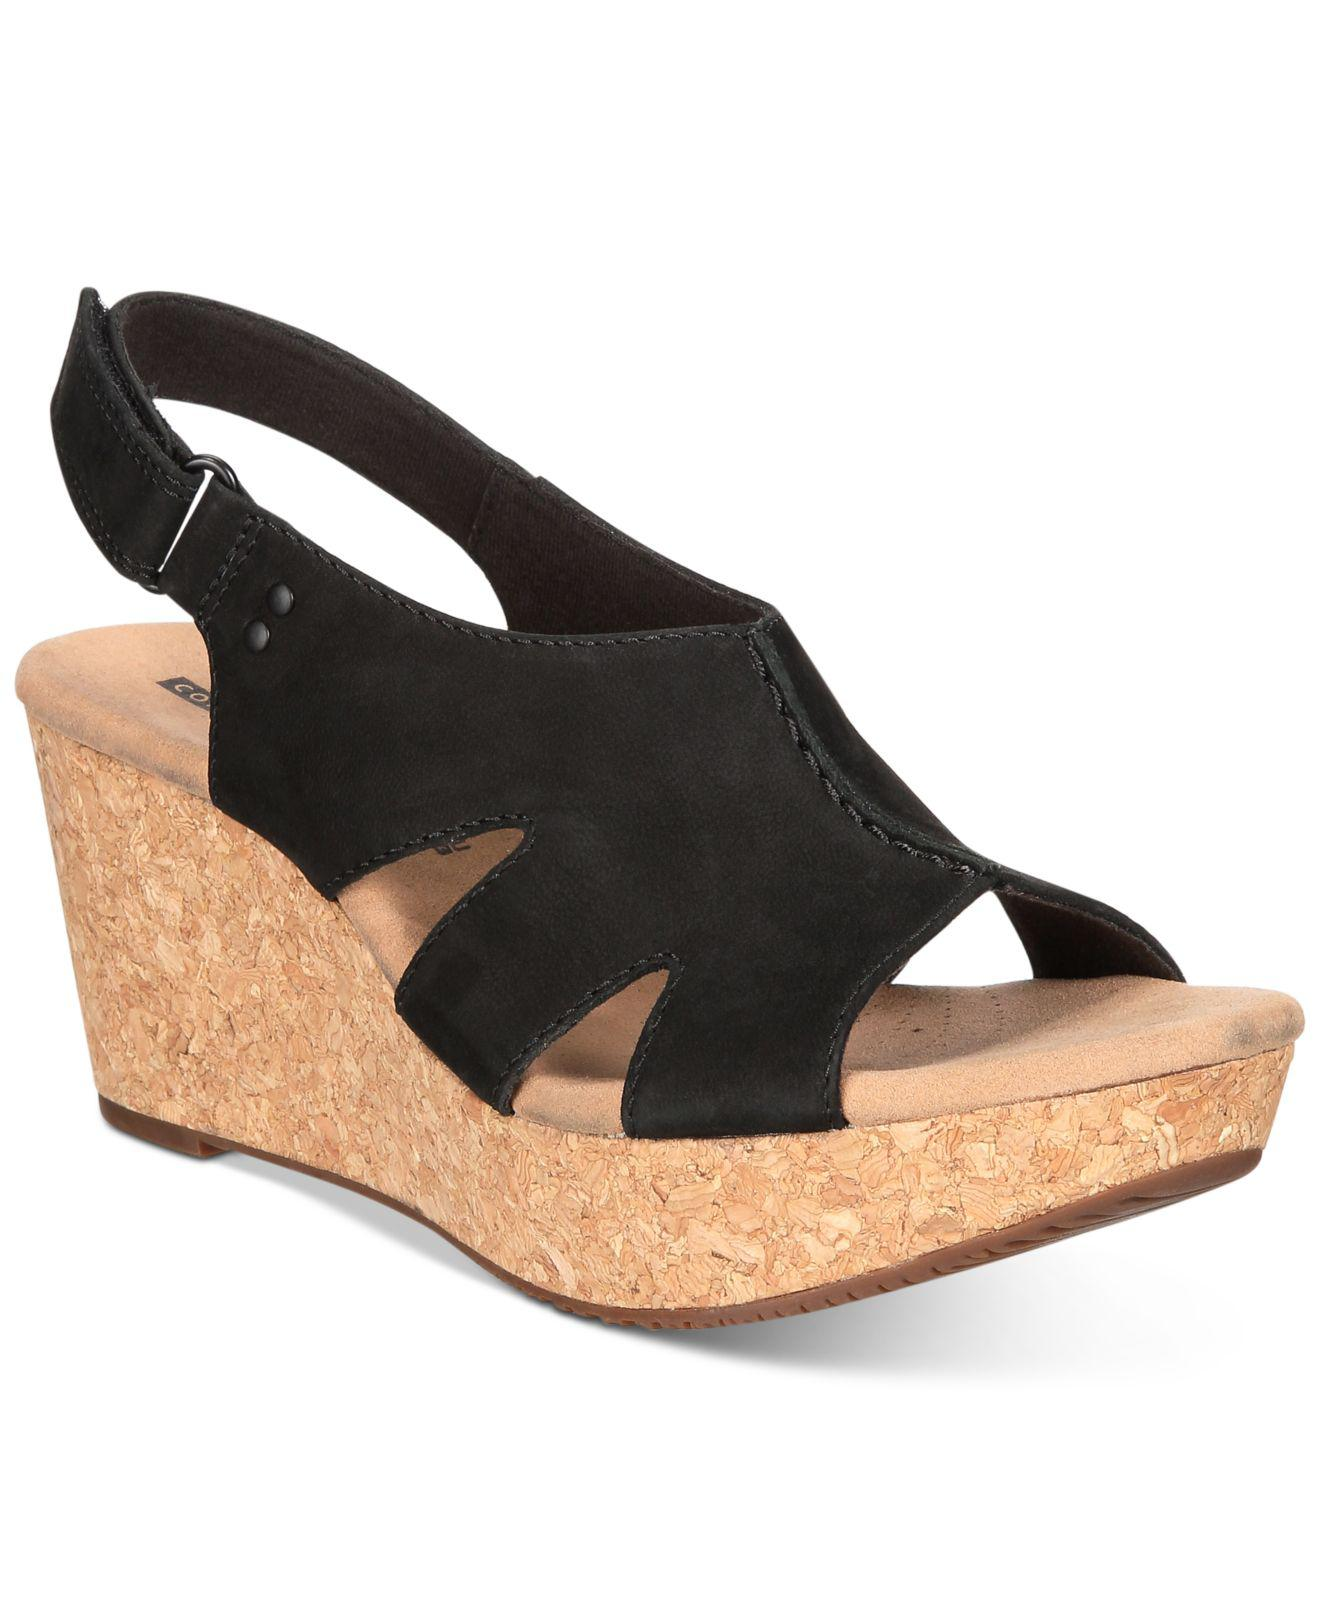 65755199725f Clarks Women s Annadel Bari Wedge Sandals in Black - Lyst